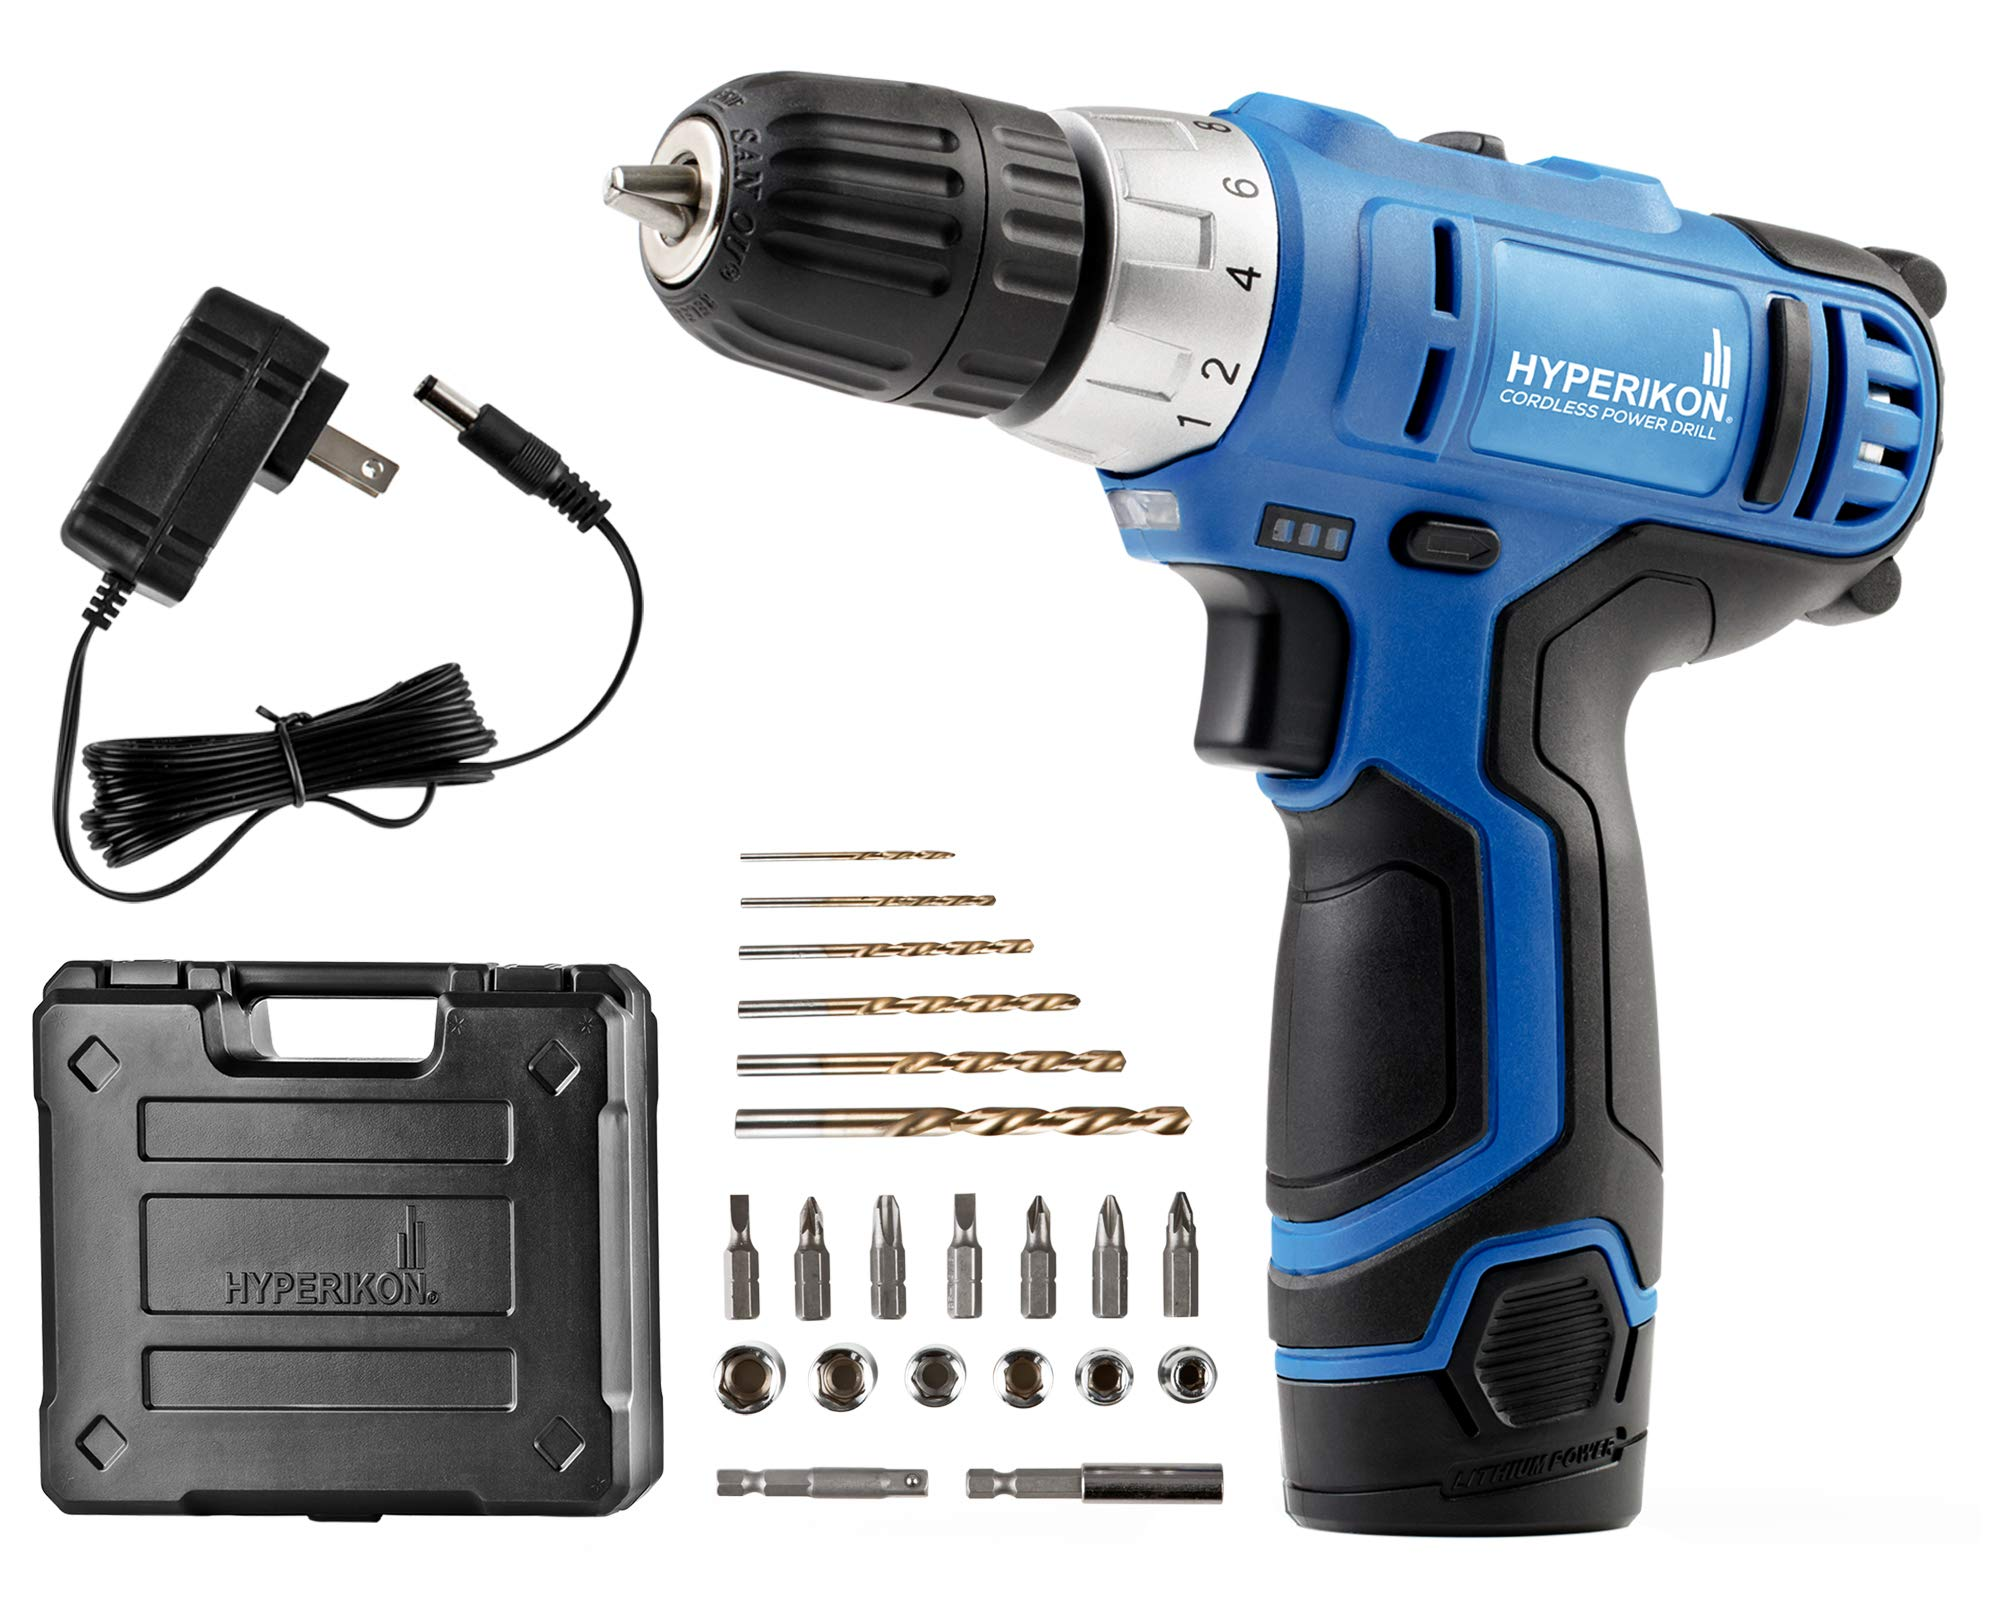 Hyperikon Electric Power Drill, 12V, 3/8 Keyless Chuck, Power Tool, Driver Set and Battery by Hyperikon